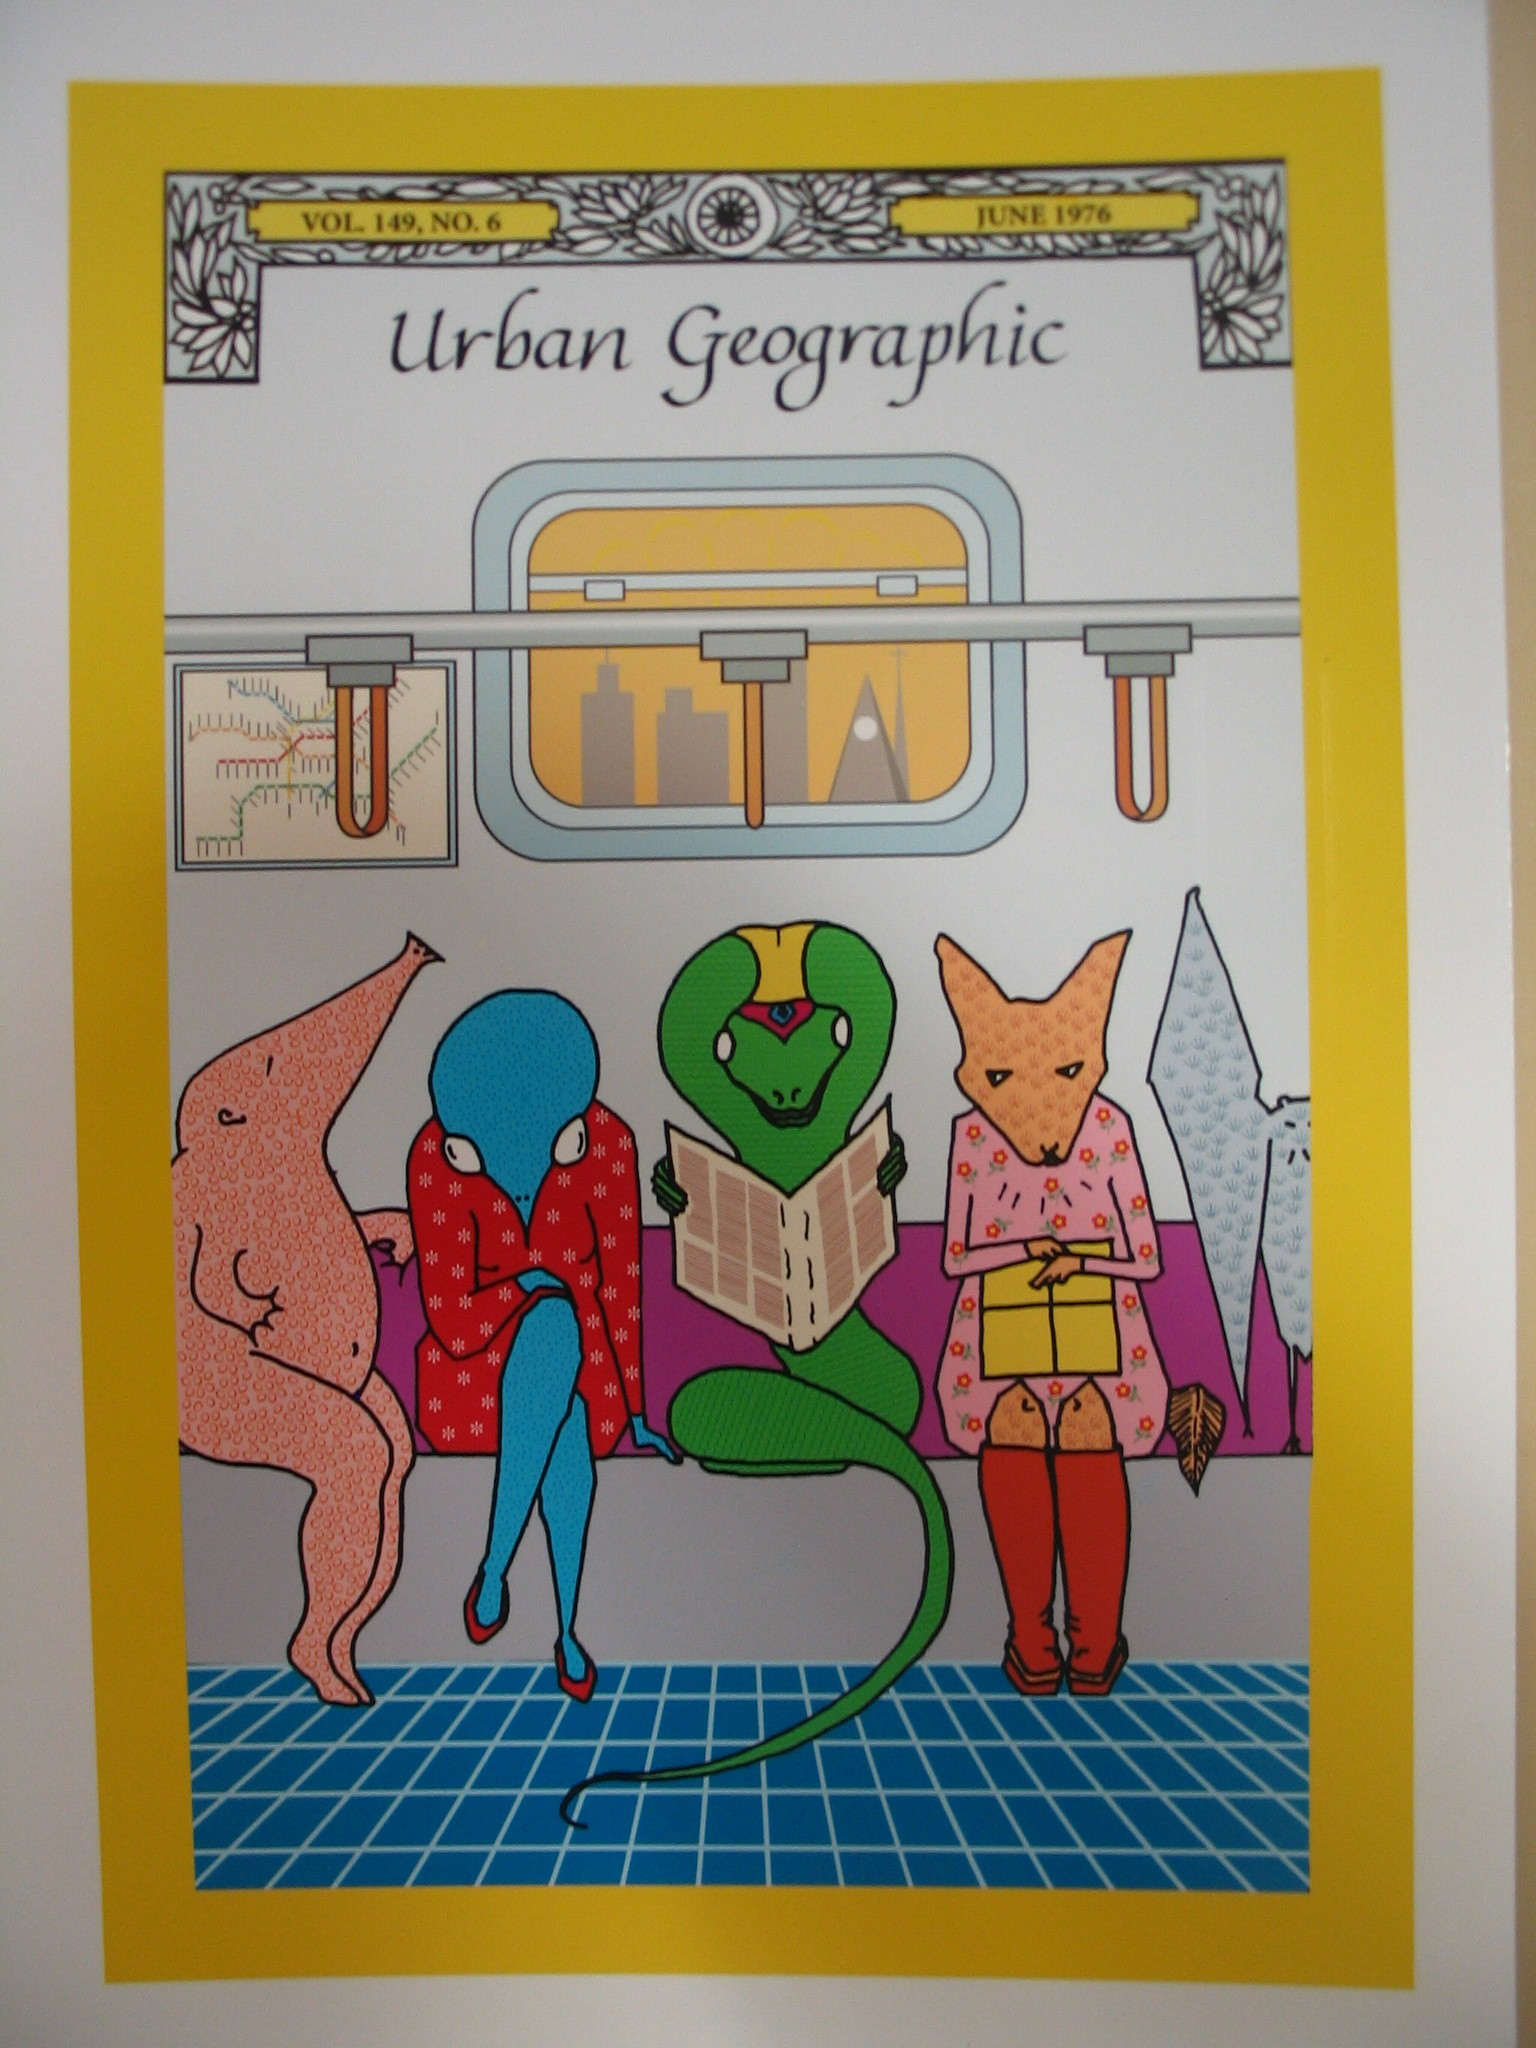 Urban Geographic, 2014